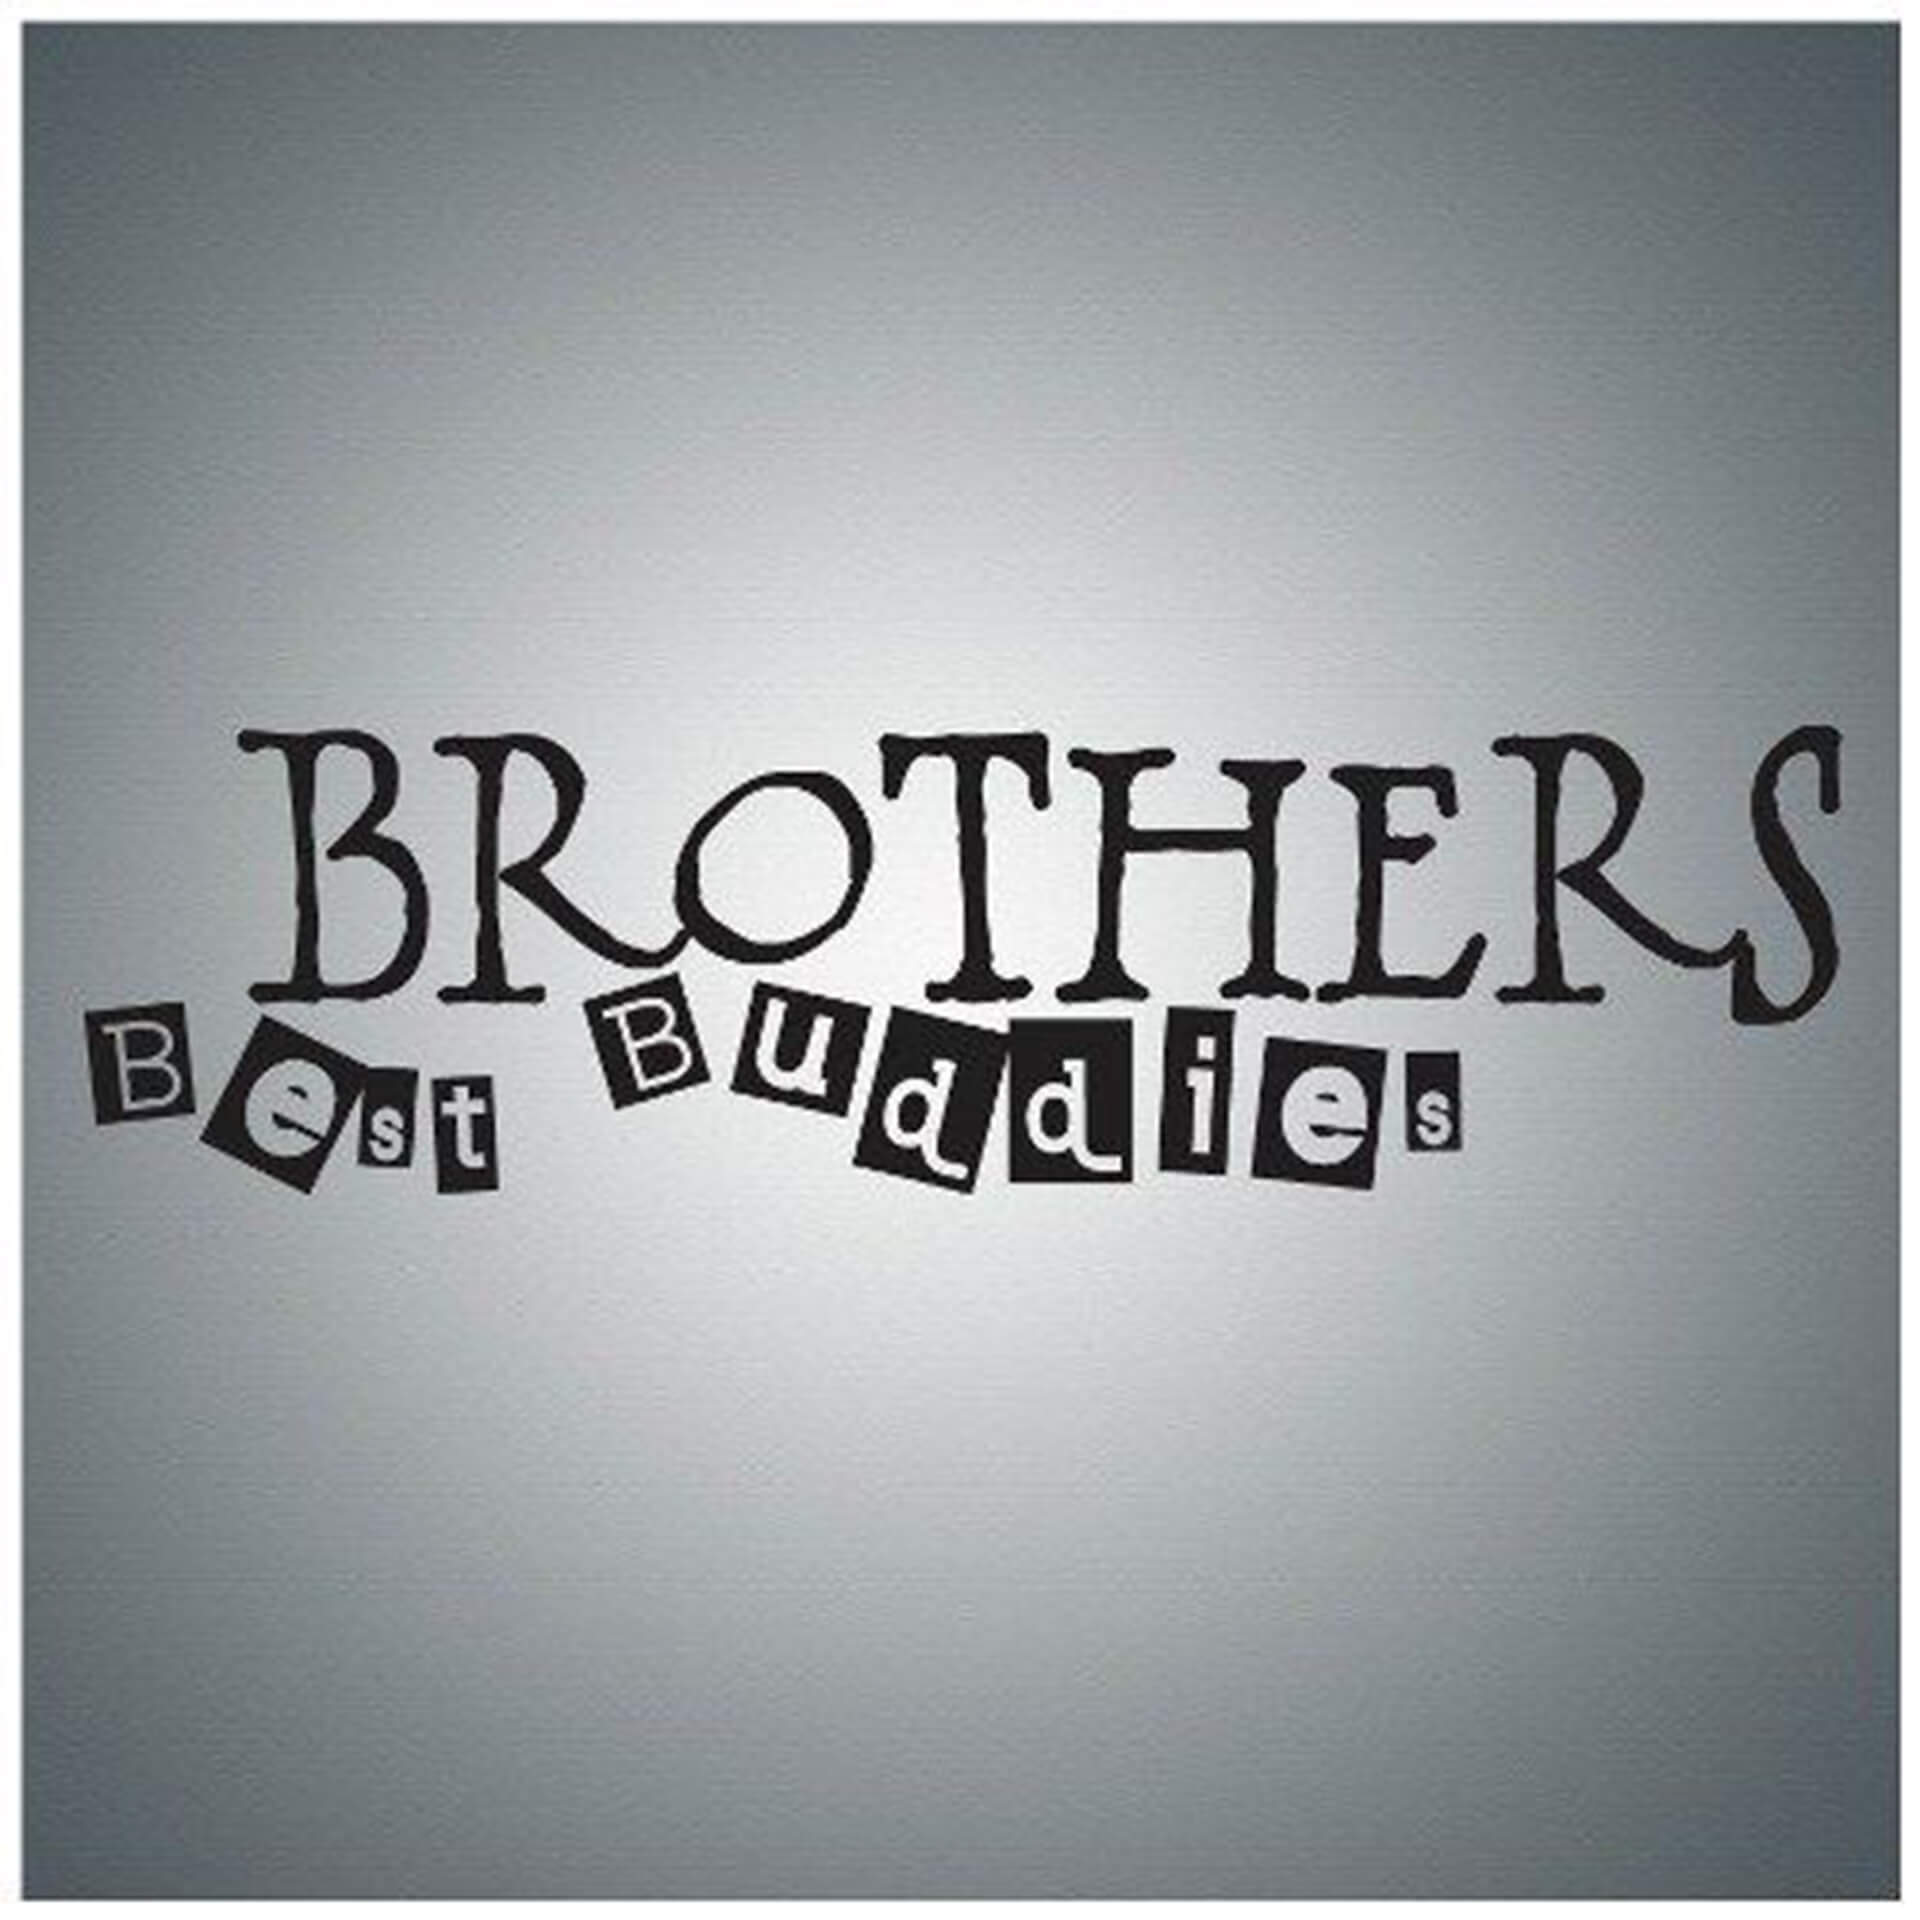 happy brothers day wishes greetings best buddies text image